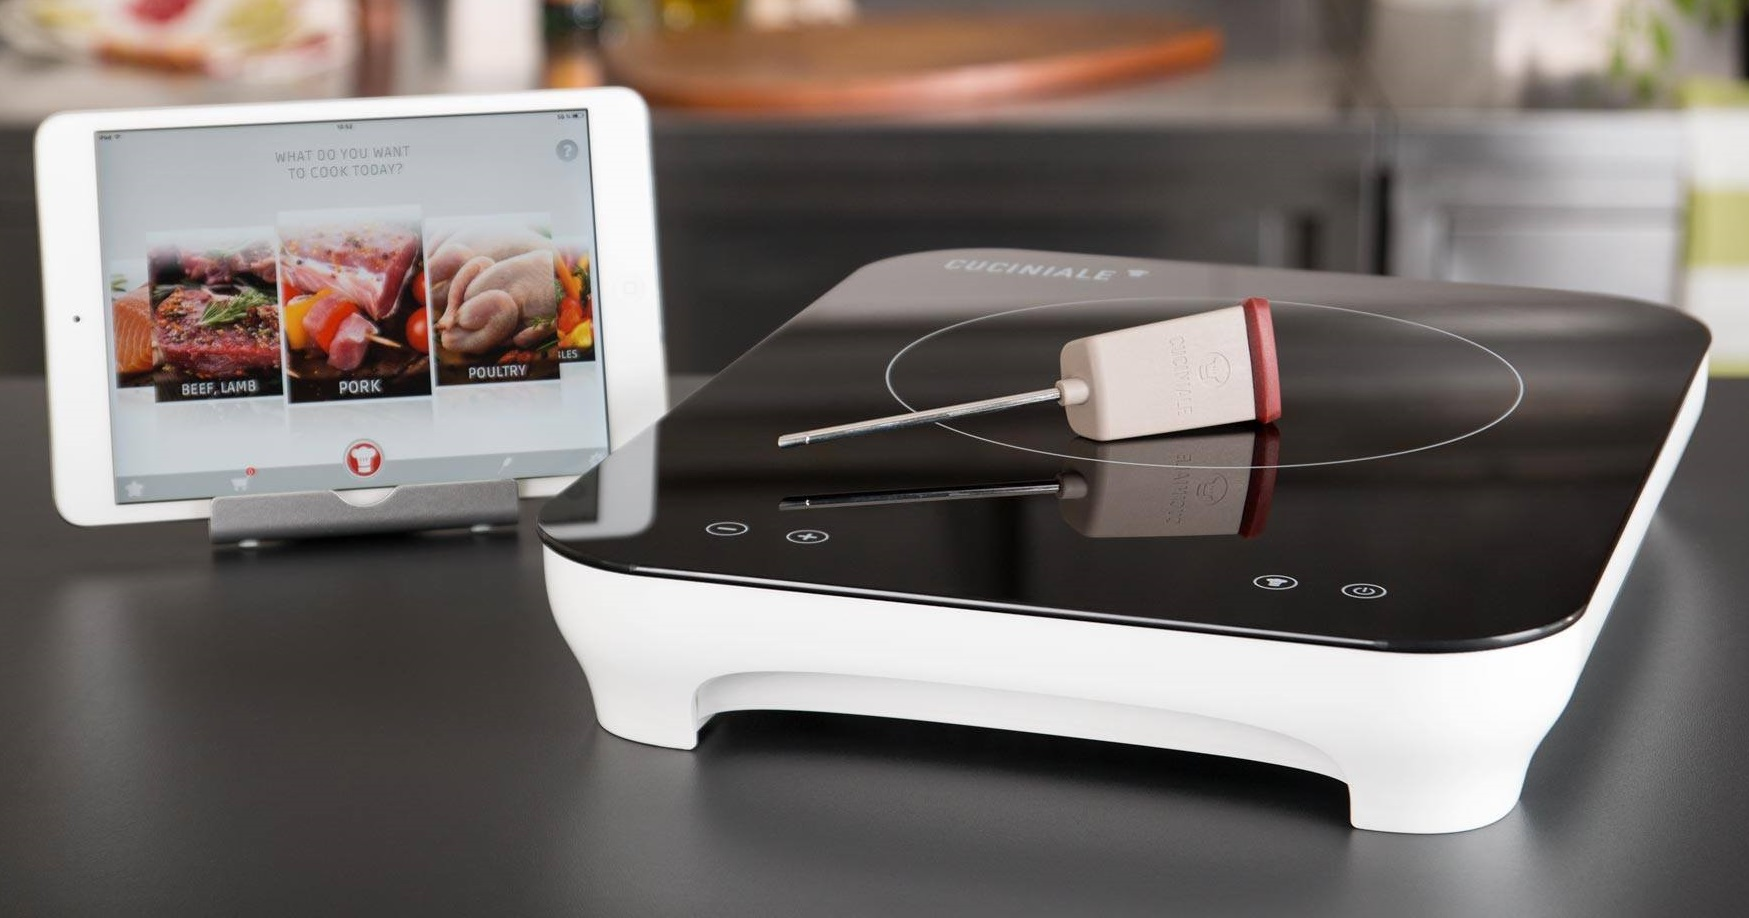 7 Smart Cooking Contraptions To Consider For A Connected Kitchen